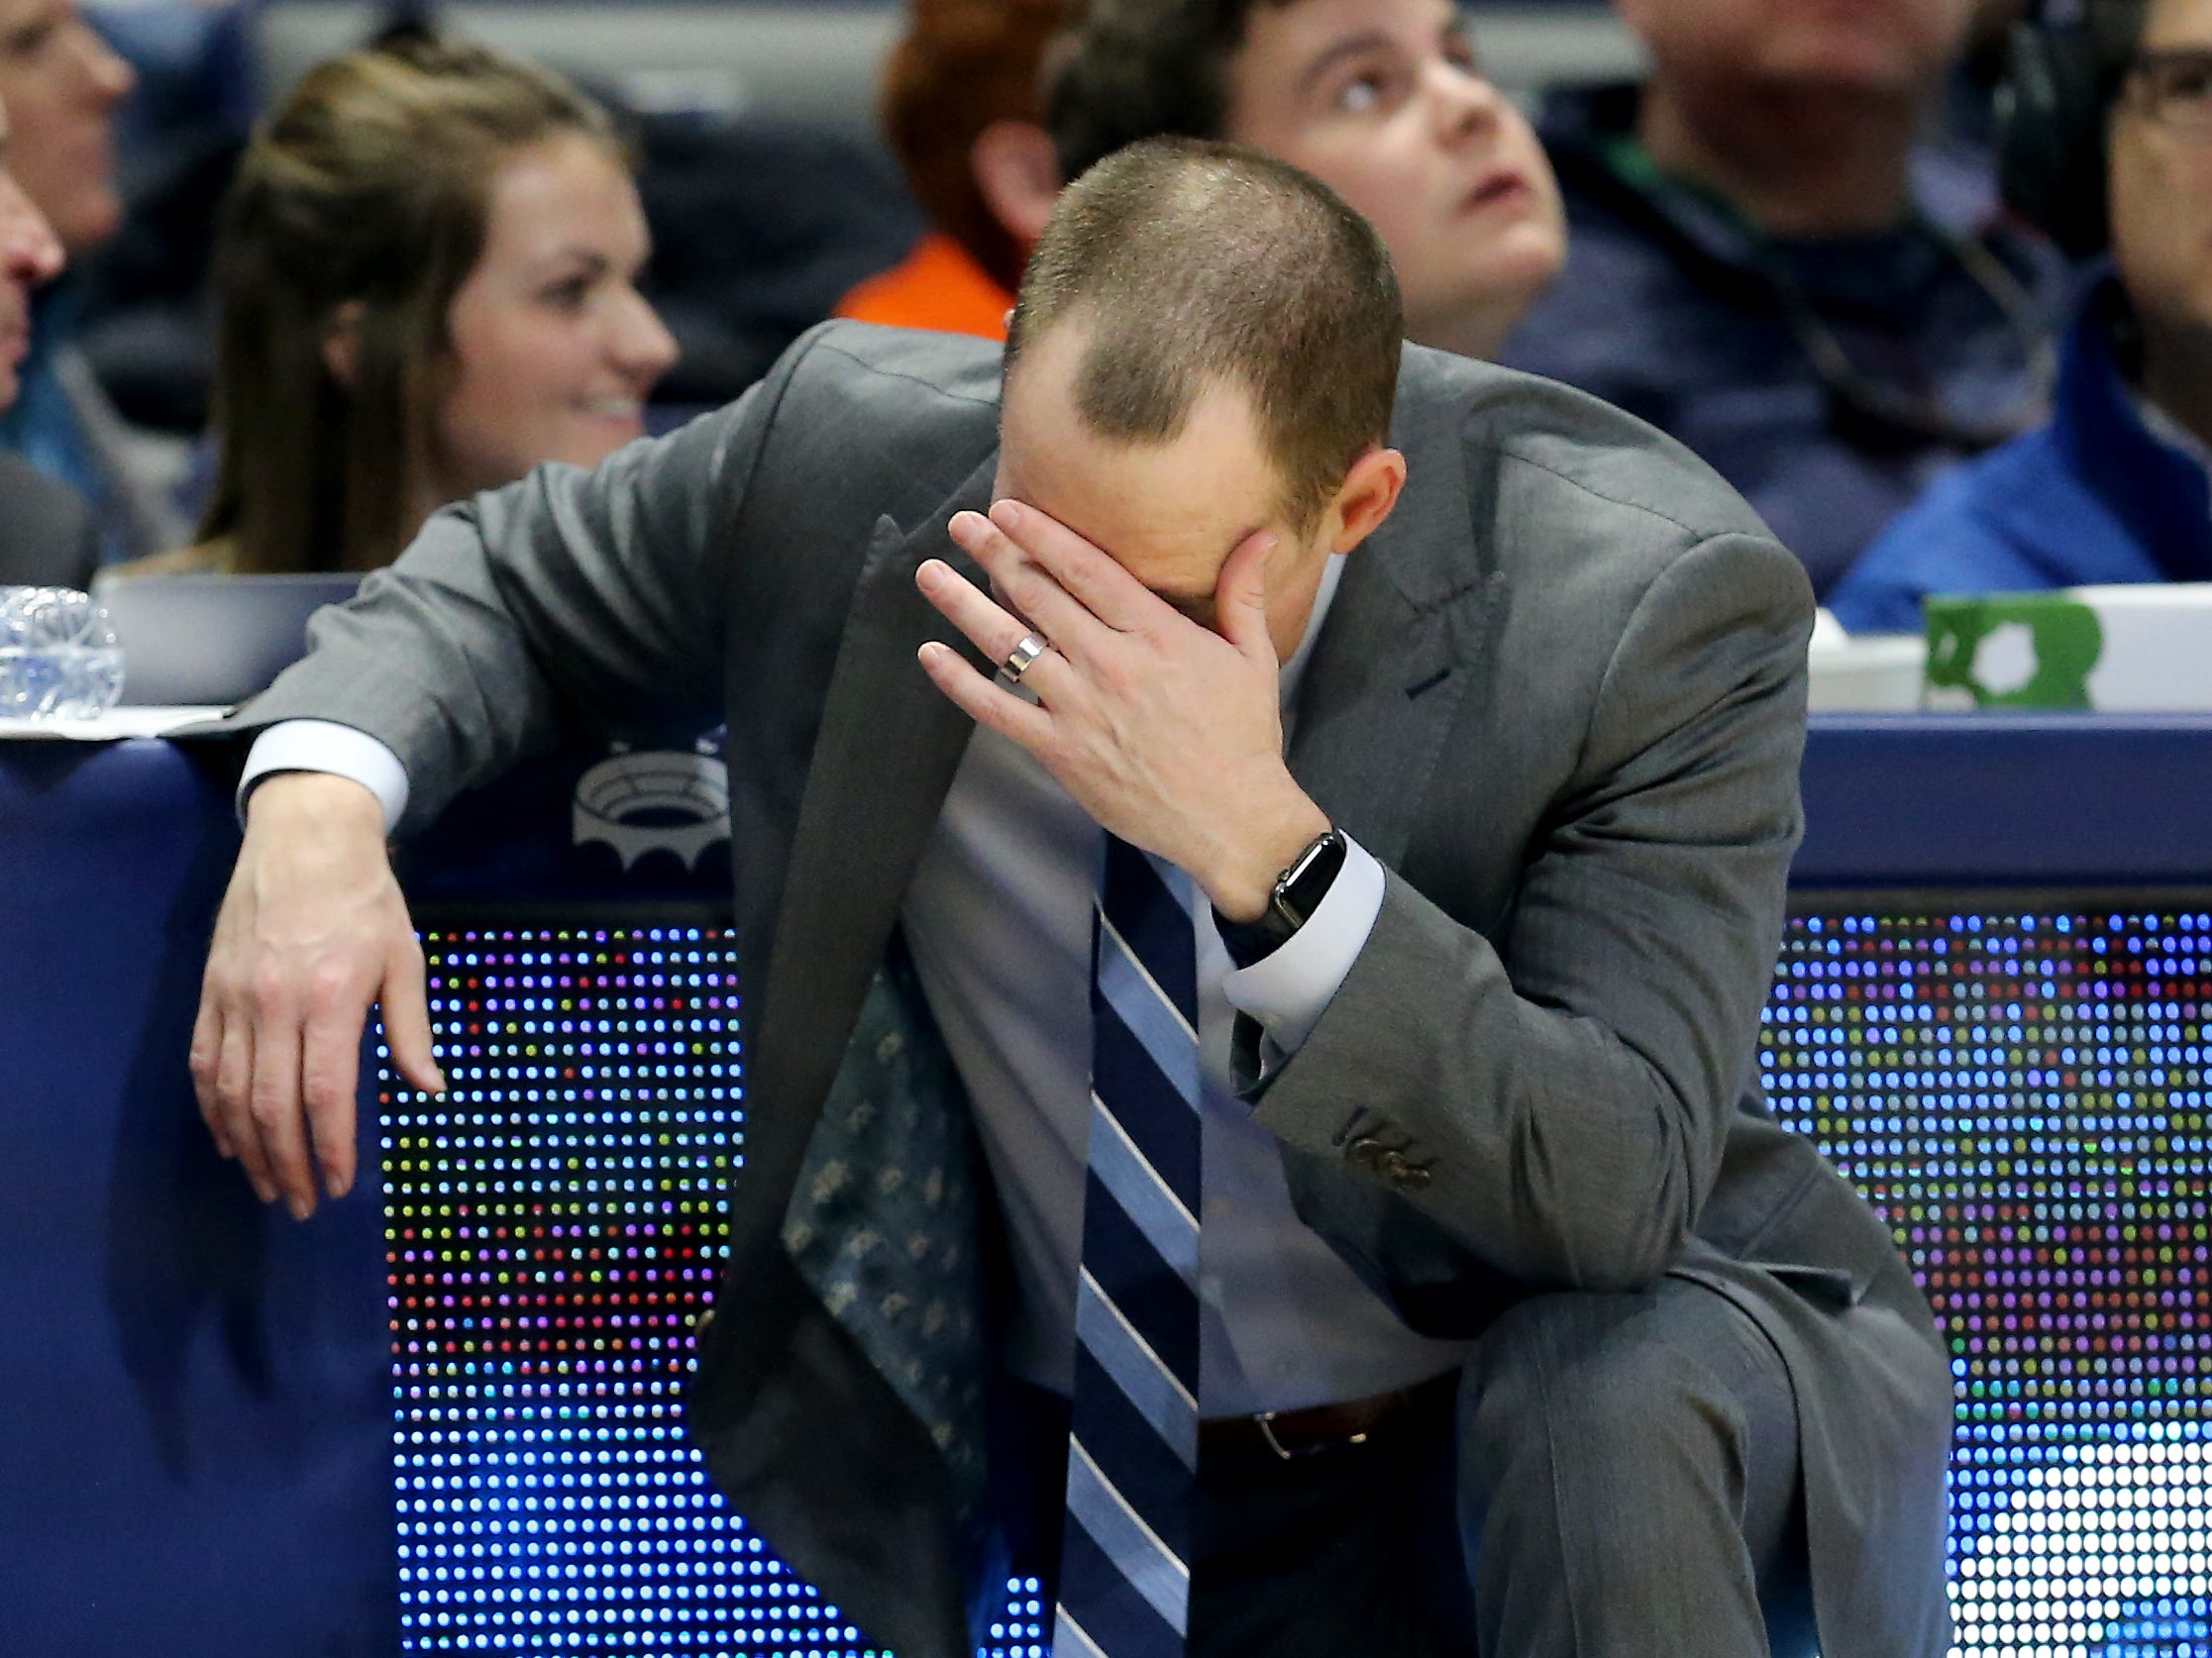 Xavier Musketeers head coach Travis Steele reacts in frustration to a foul in the second half of an NCAA college basketball game against the Butler Bulldogs, Sunday, Jan. 13, 2019, at Cintas Center in Cincinnati. Xavier Musketeers won 70-69.